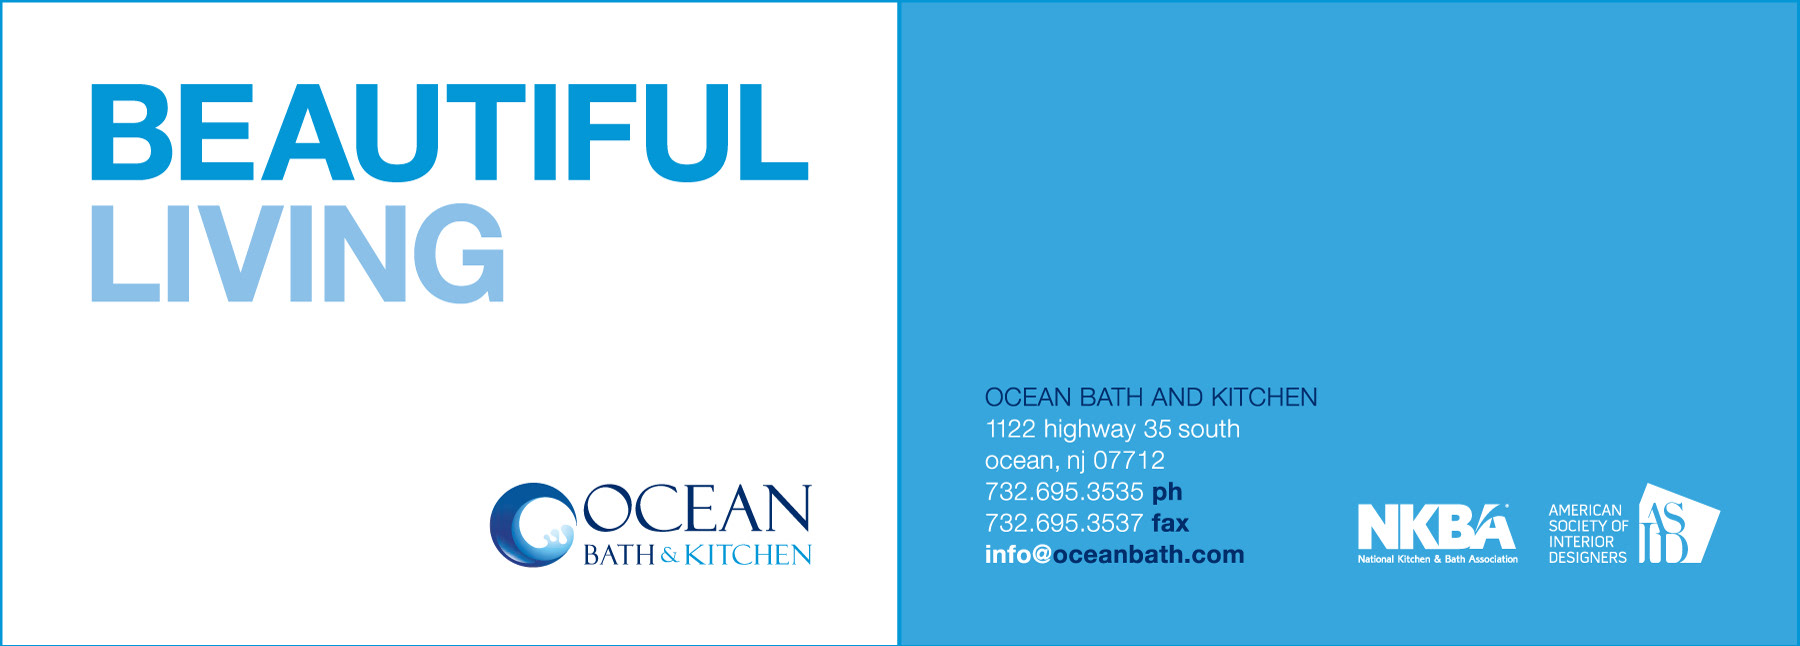 Sheryl Kantrowitz - Ocean Bath and Kitchen